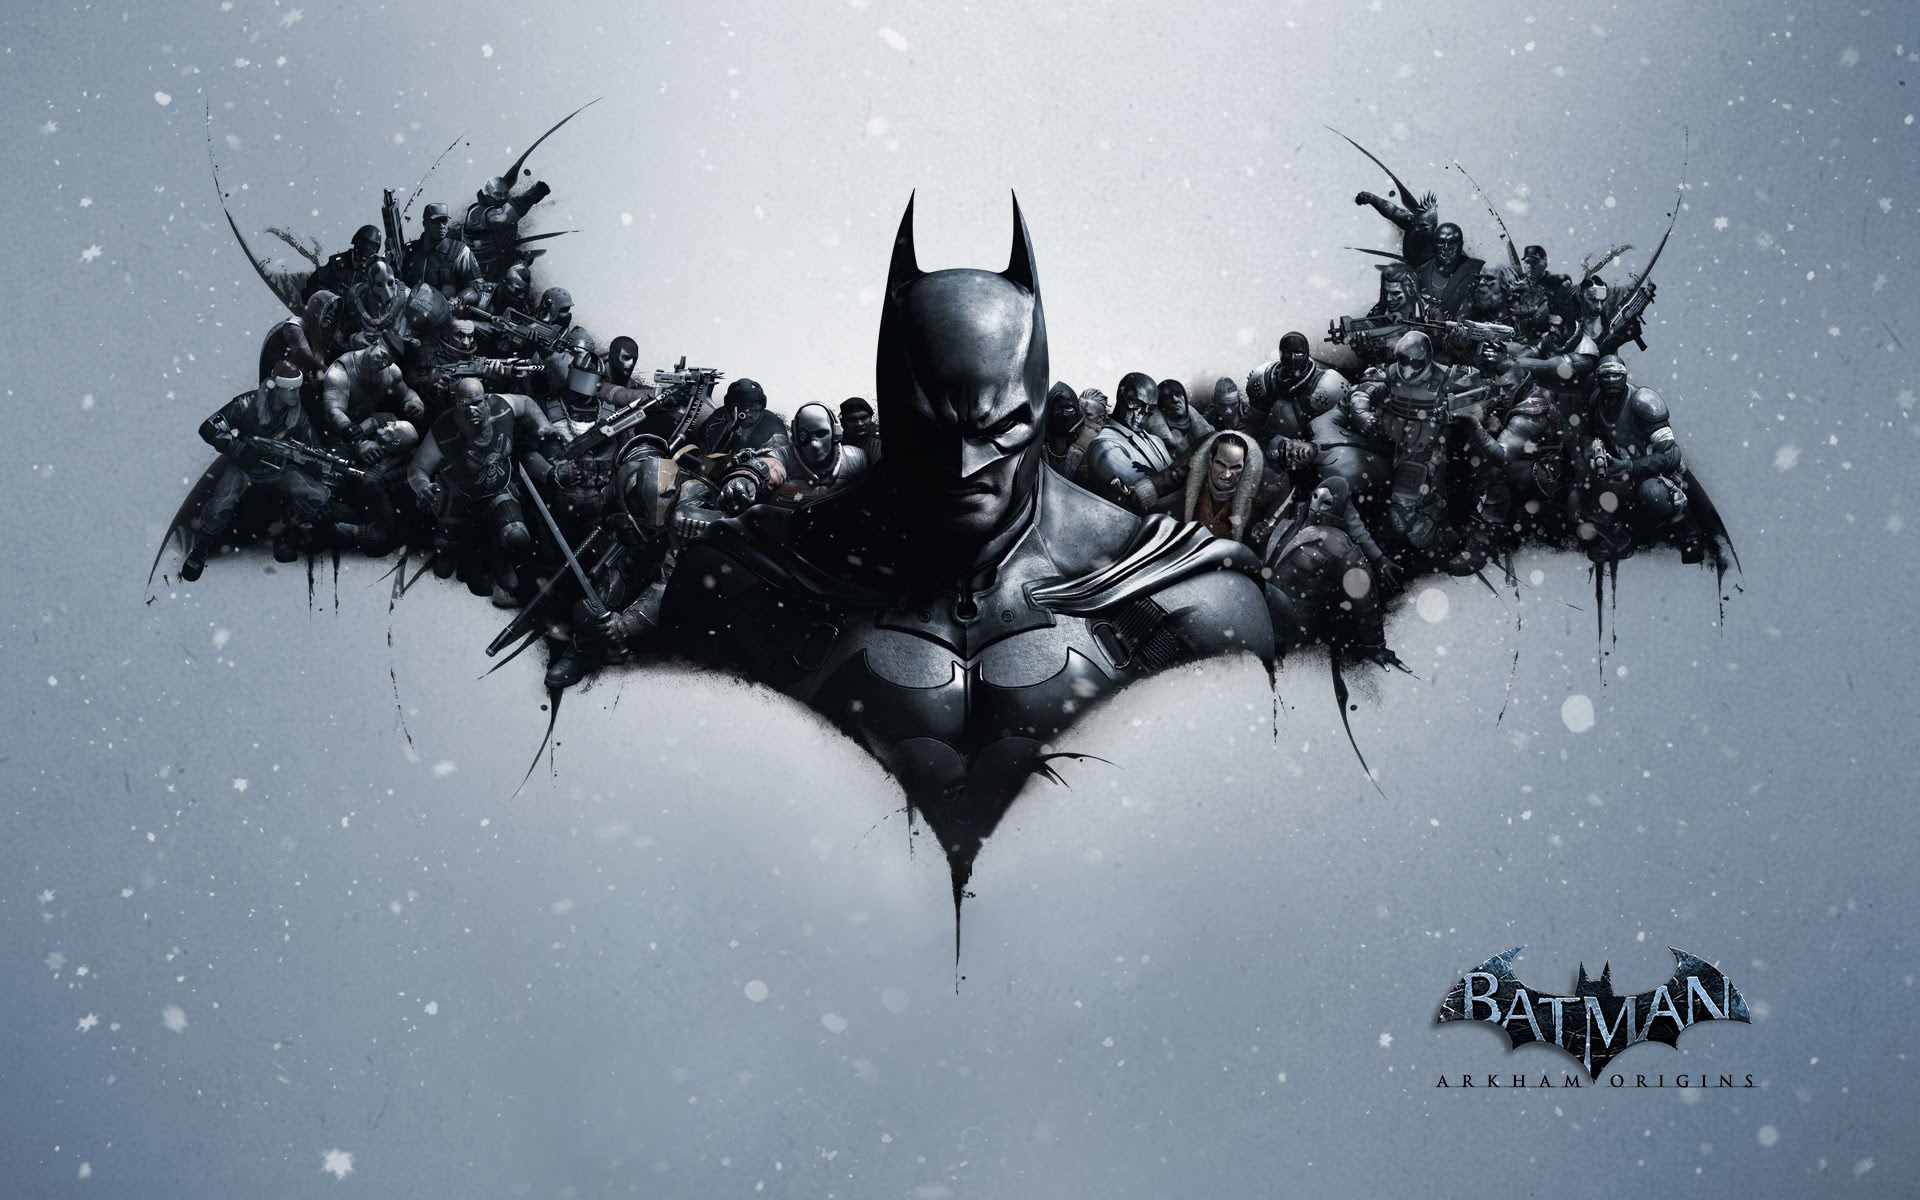 Batman Arkham Origins Video Game Wallpapers HD Wallpapers 1920x1200